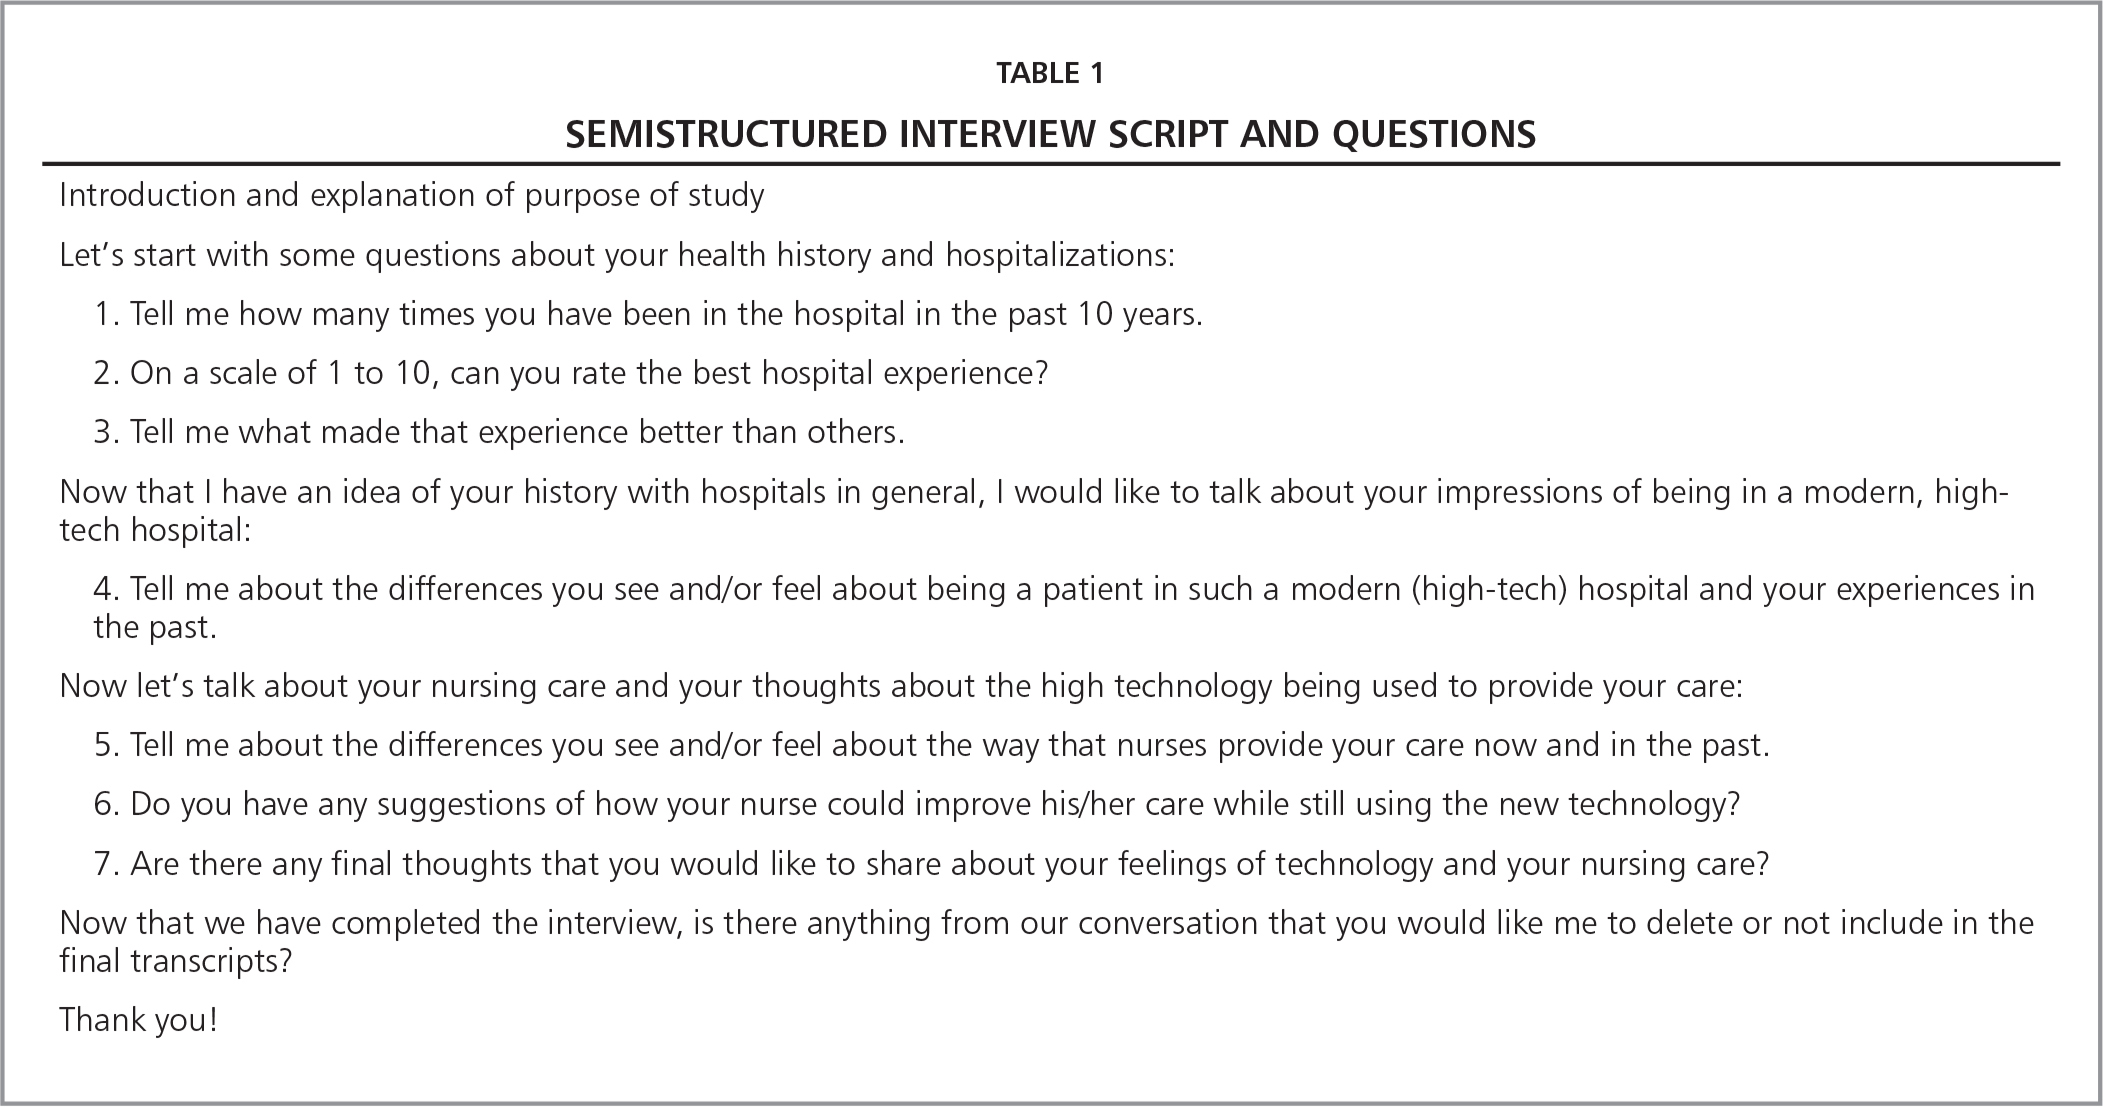 Semistructured Interview Script and Questions